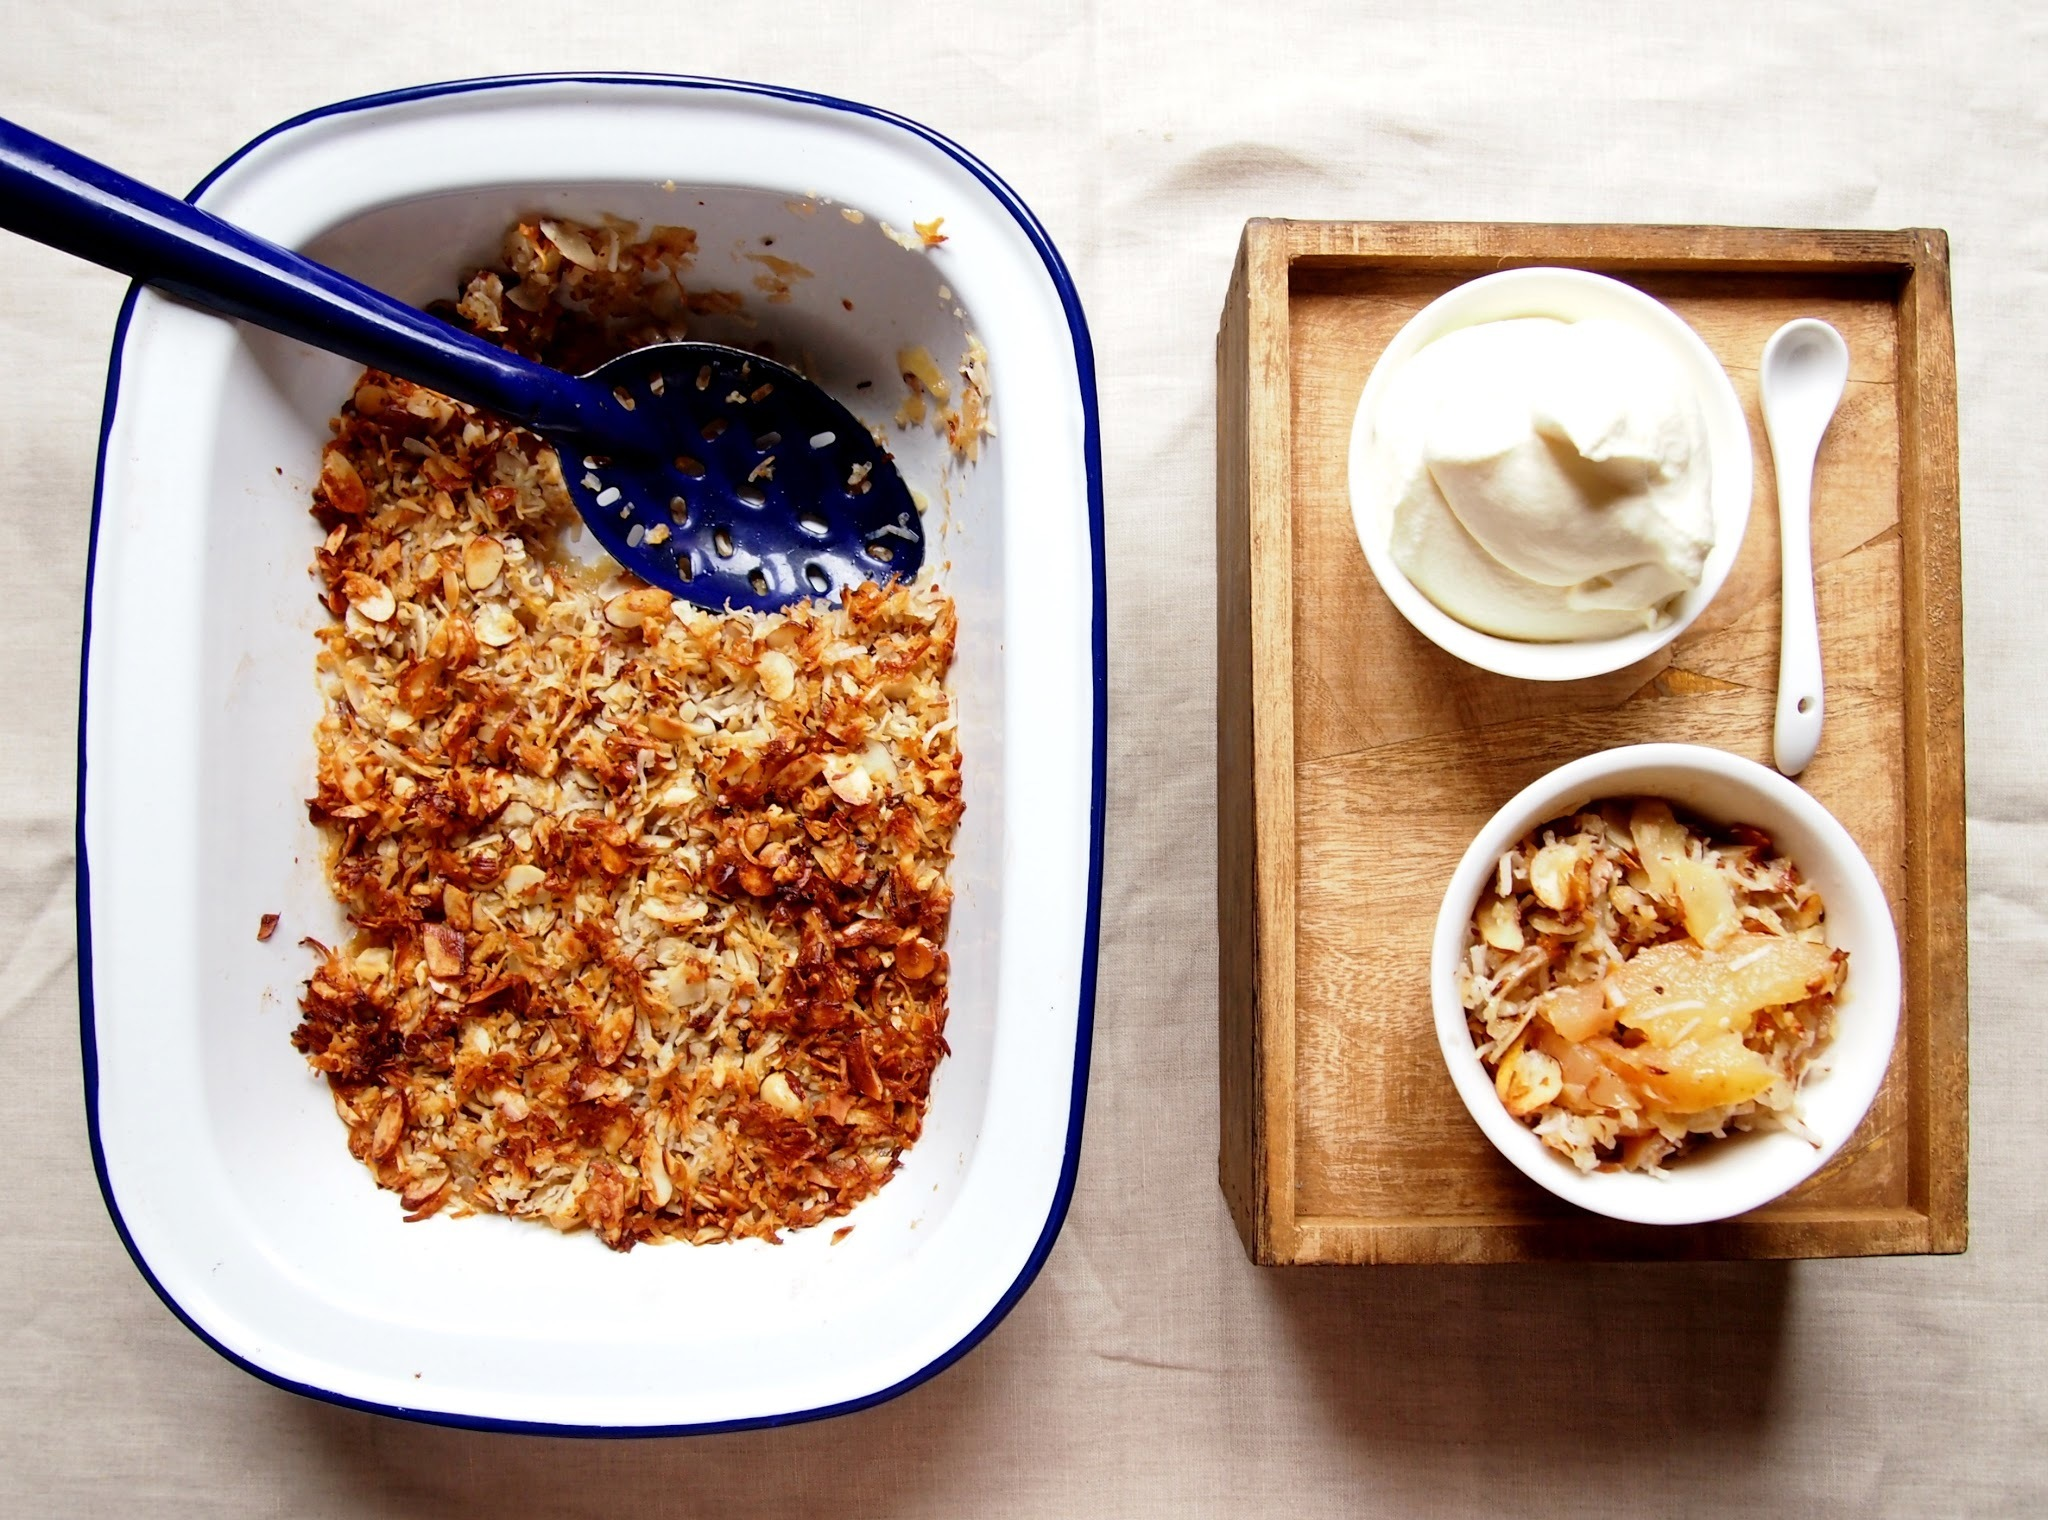 kiwifruit, apple and coconut crumble